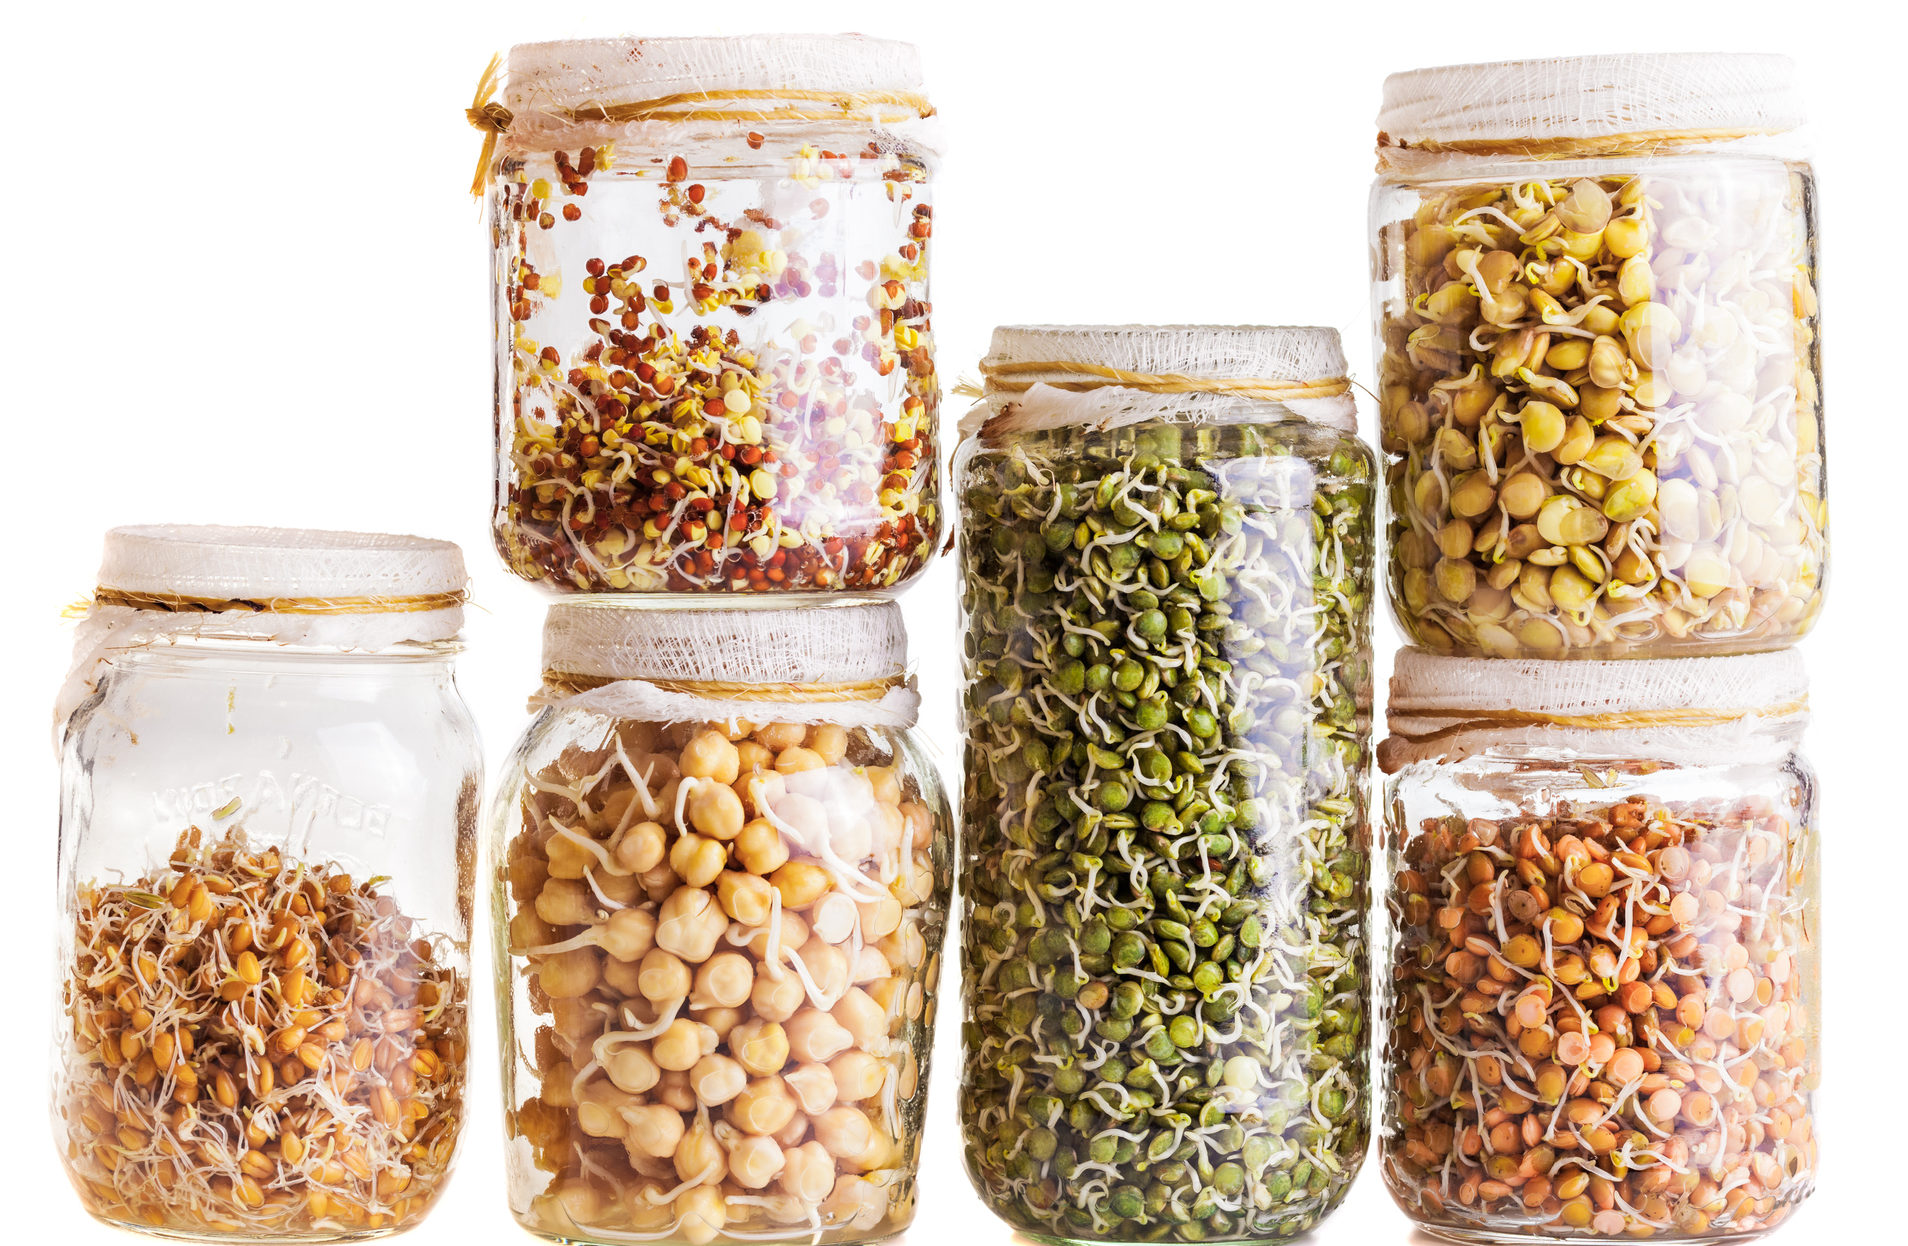 are sprouted grains more nutritious than regular whole grains